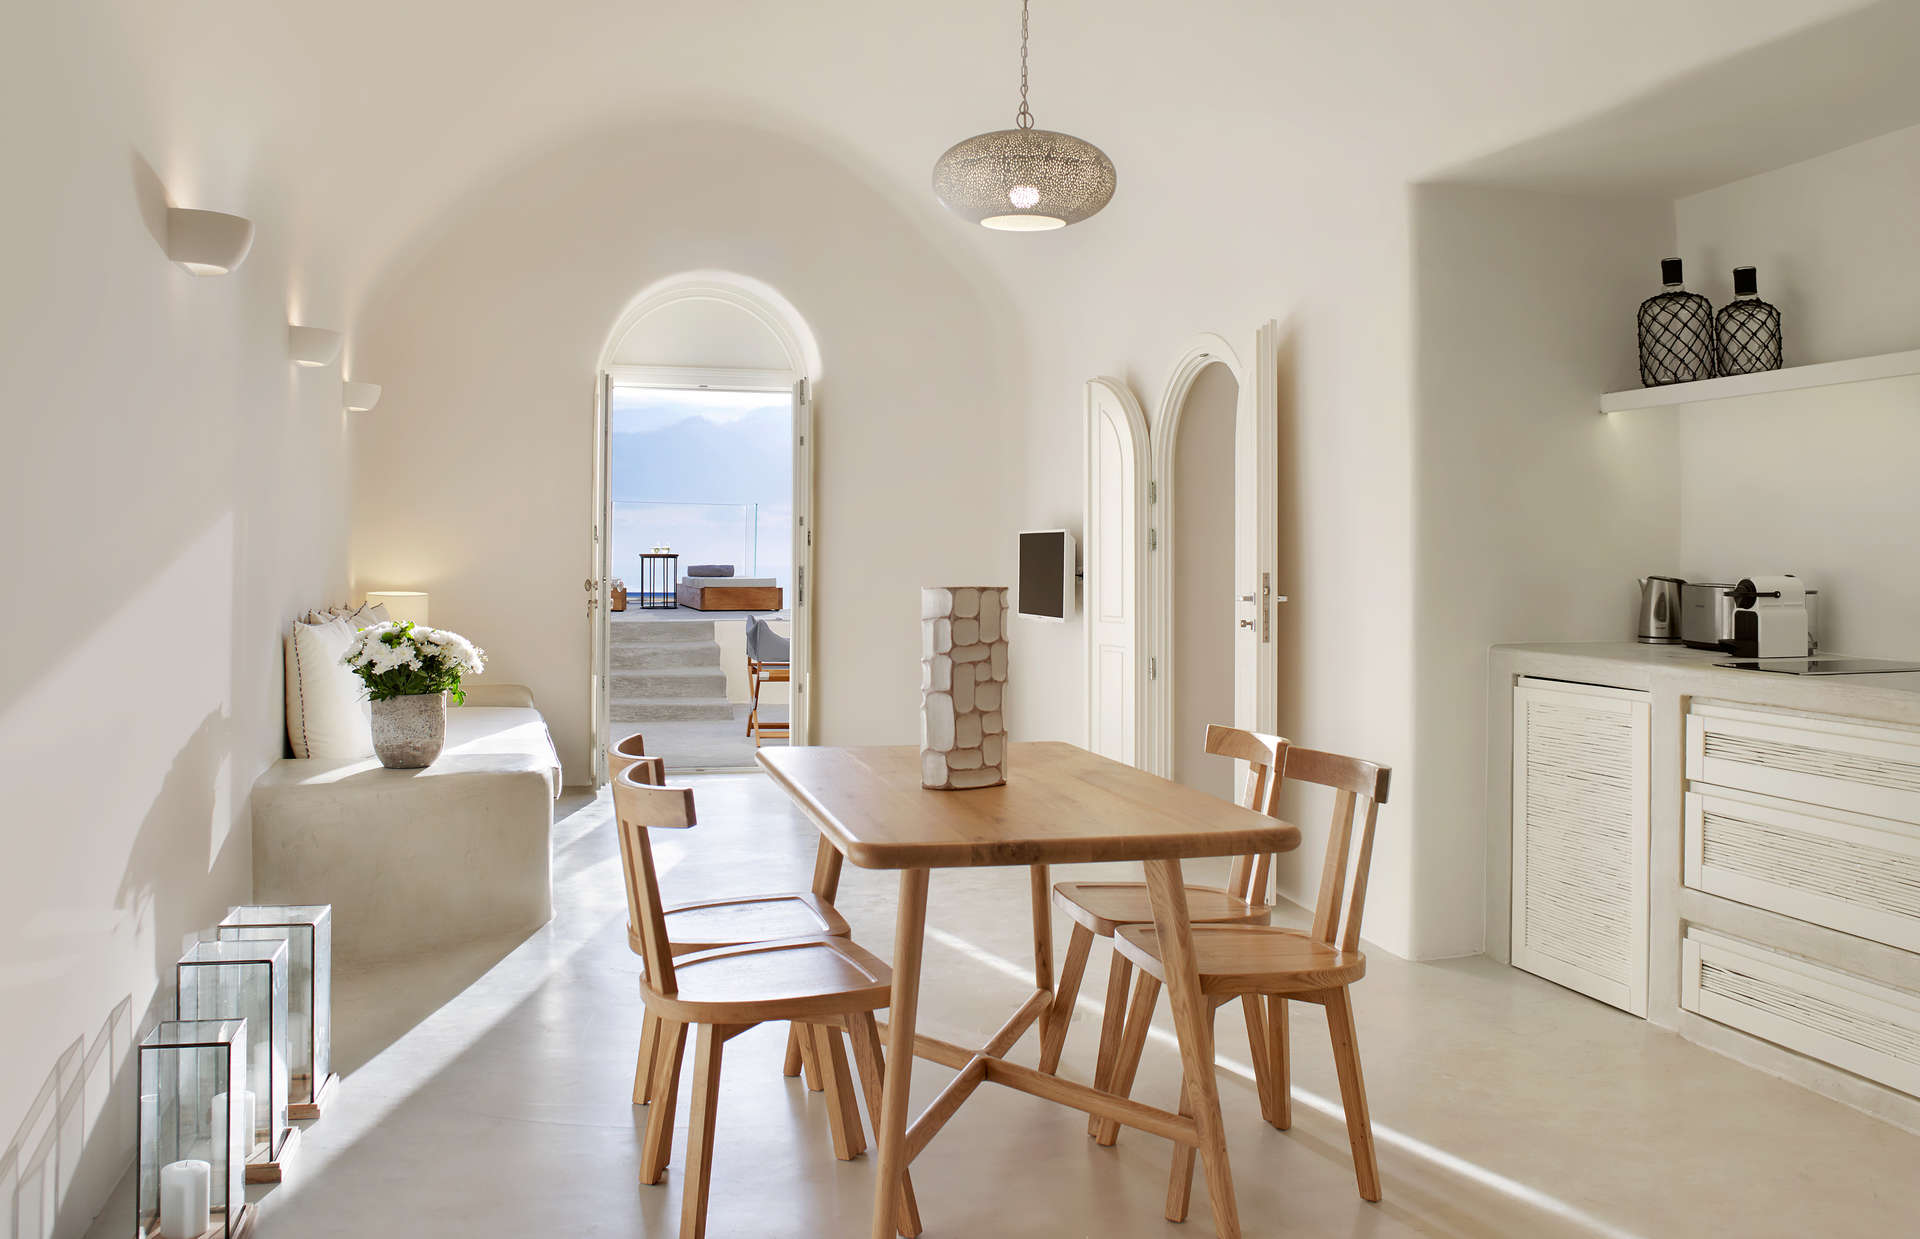 Luxury vacation rentals europe - Greece - Santorini - Fira - Villa Ioli - Image 1/10